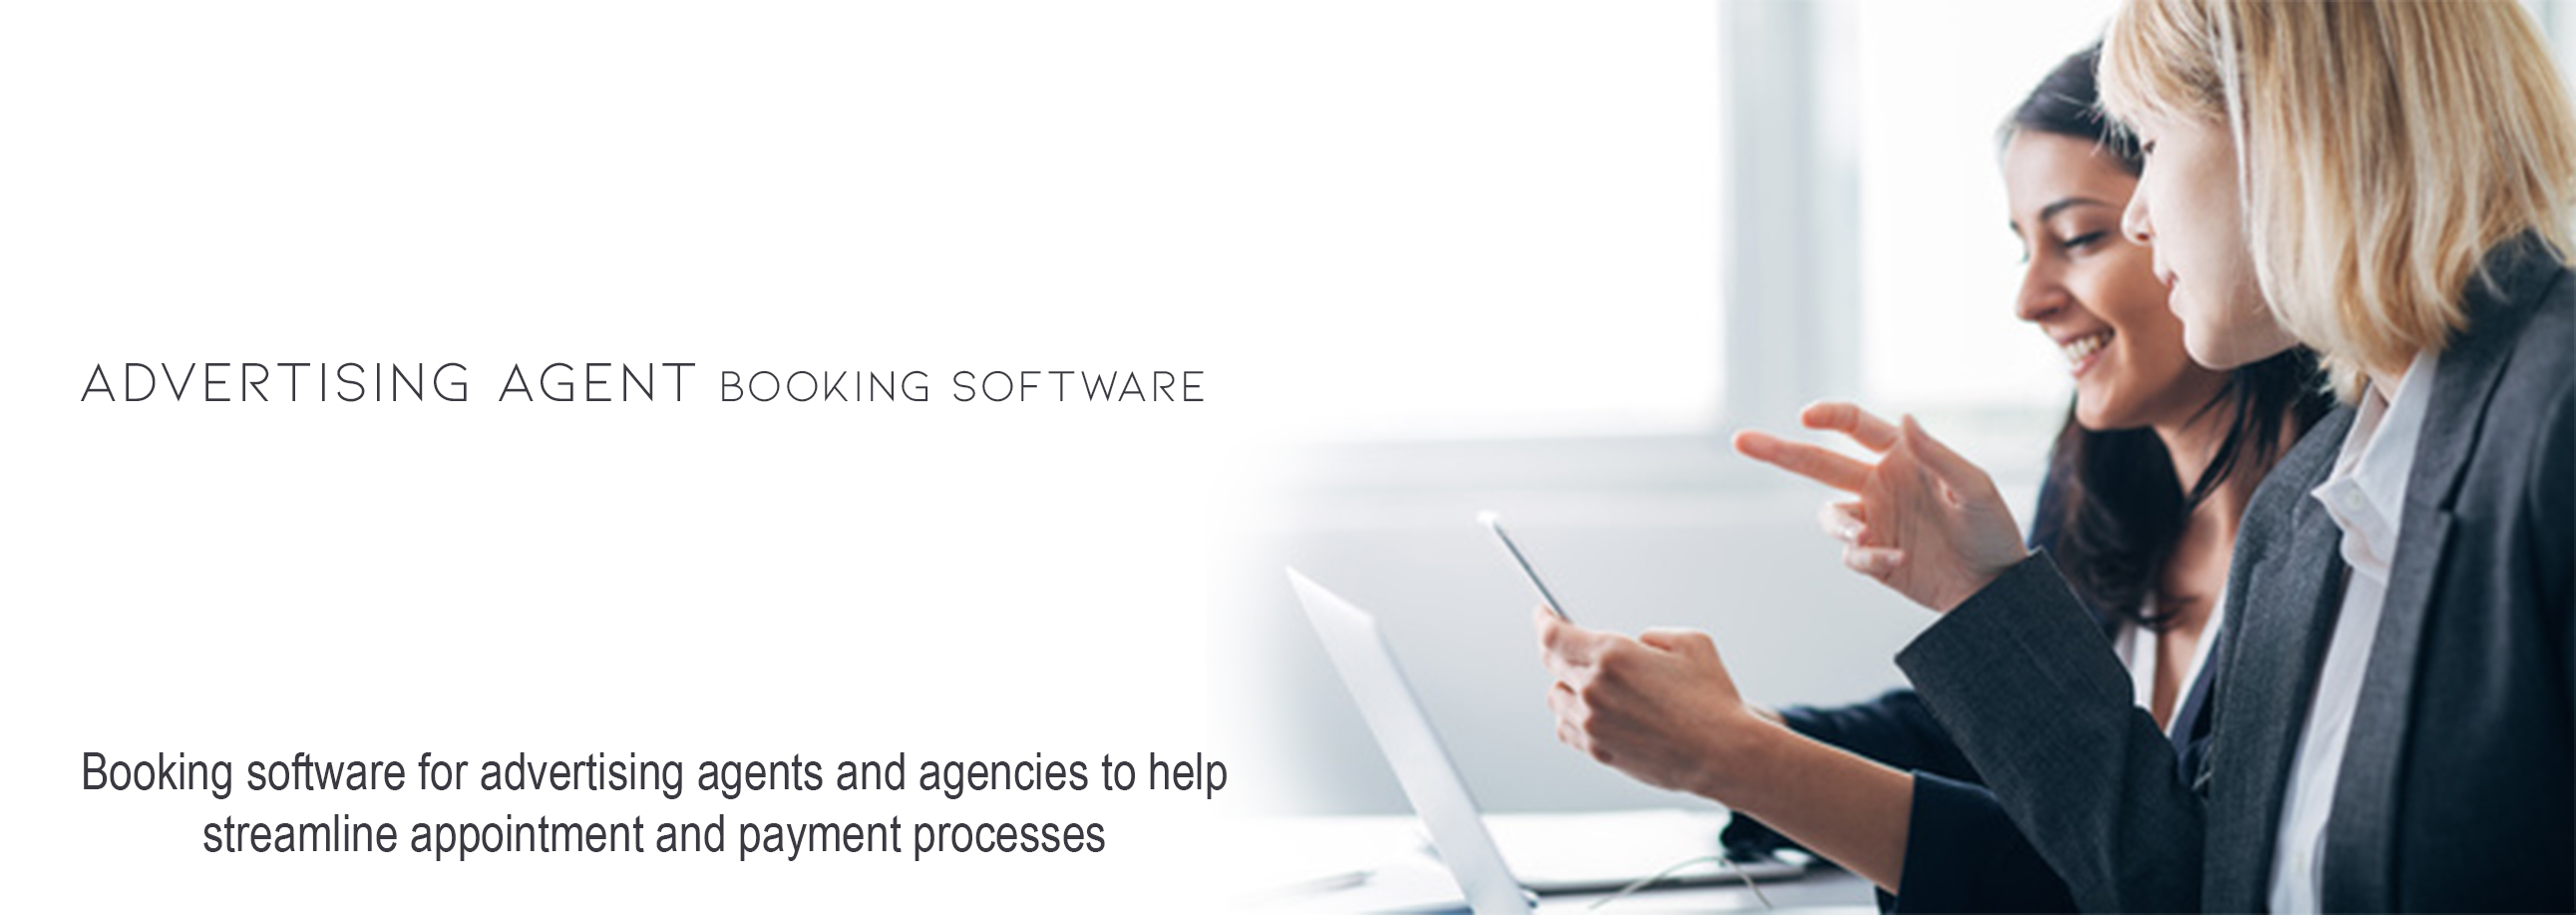 Advertising Agent Booking Software